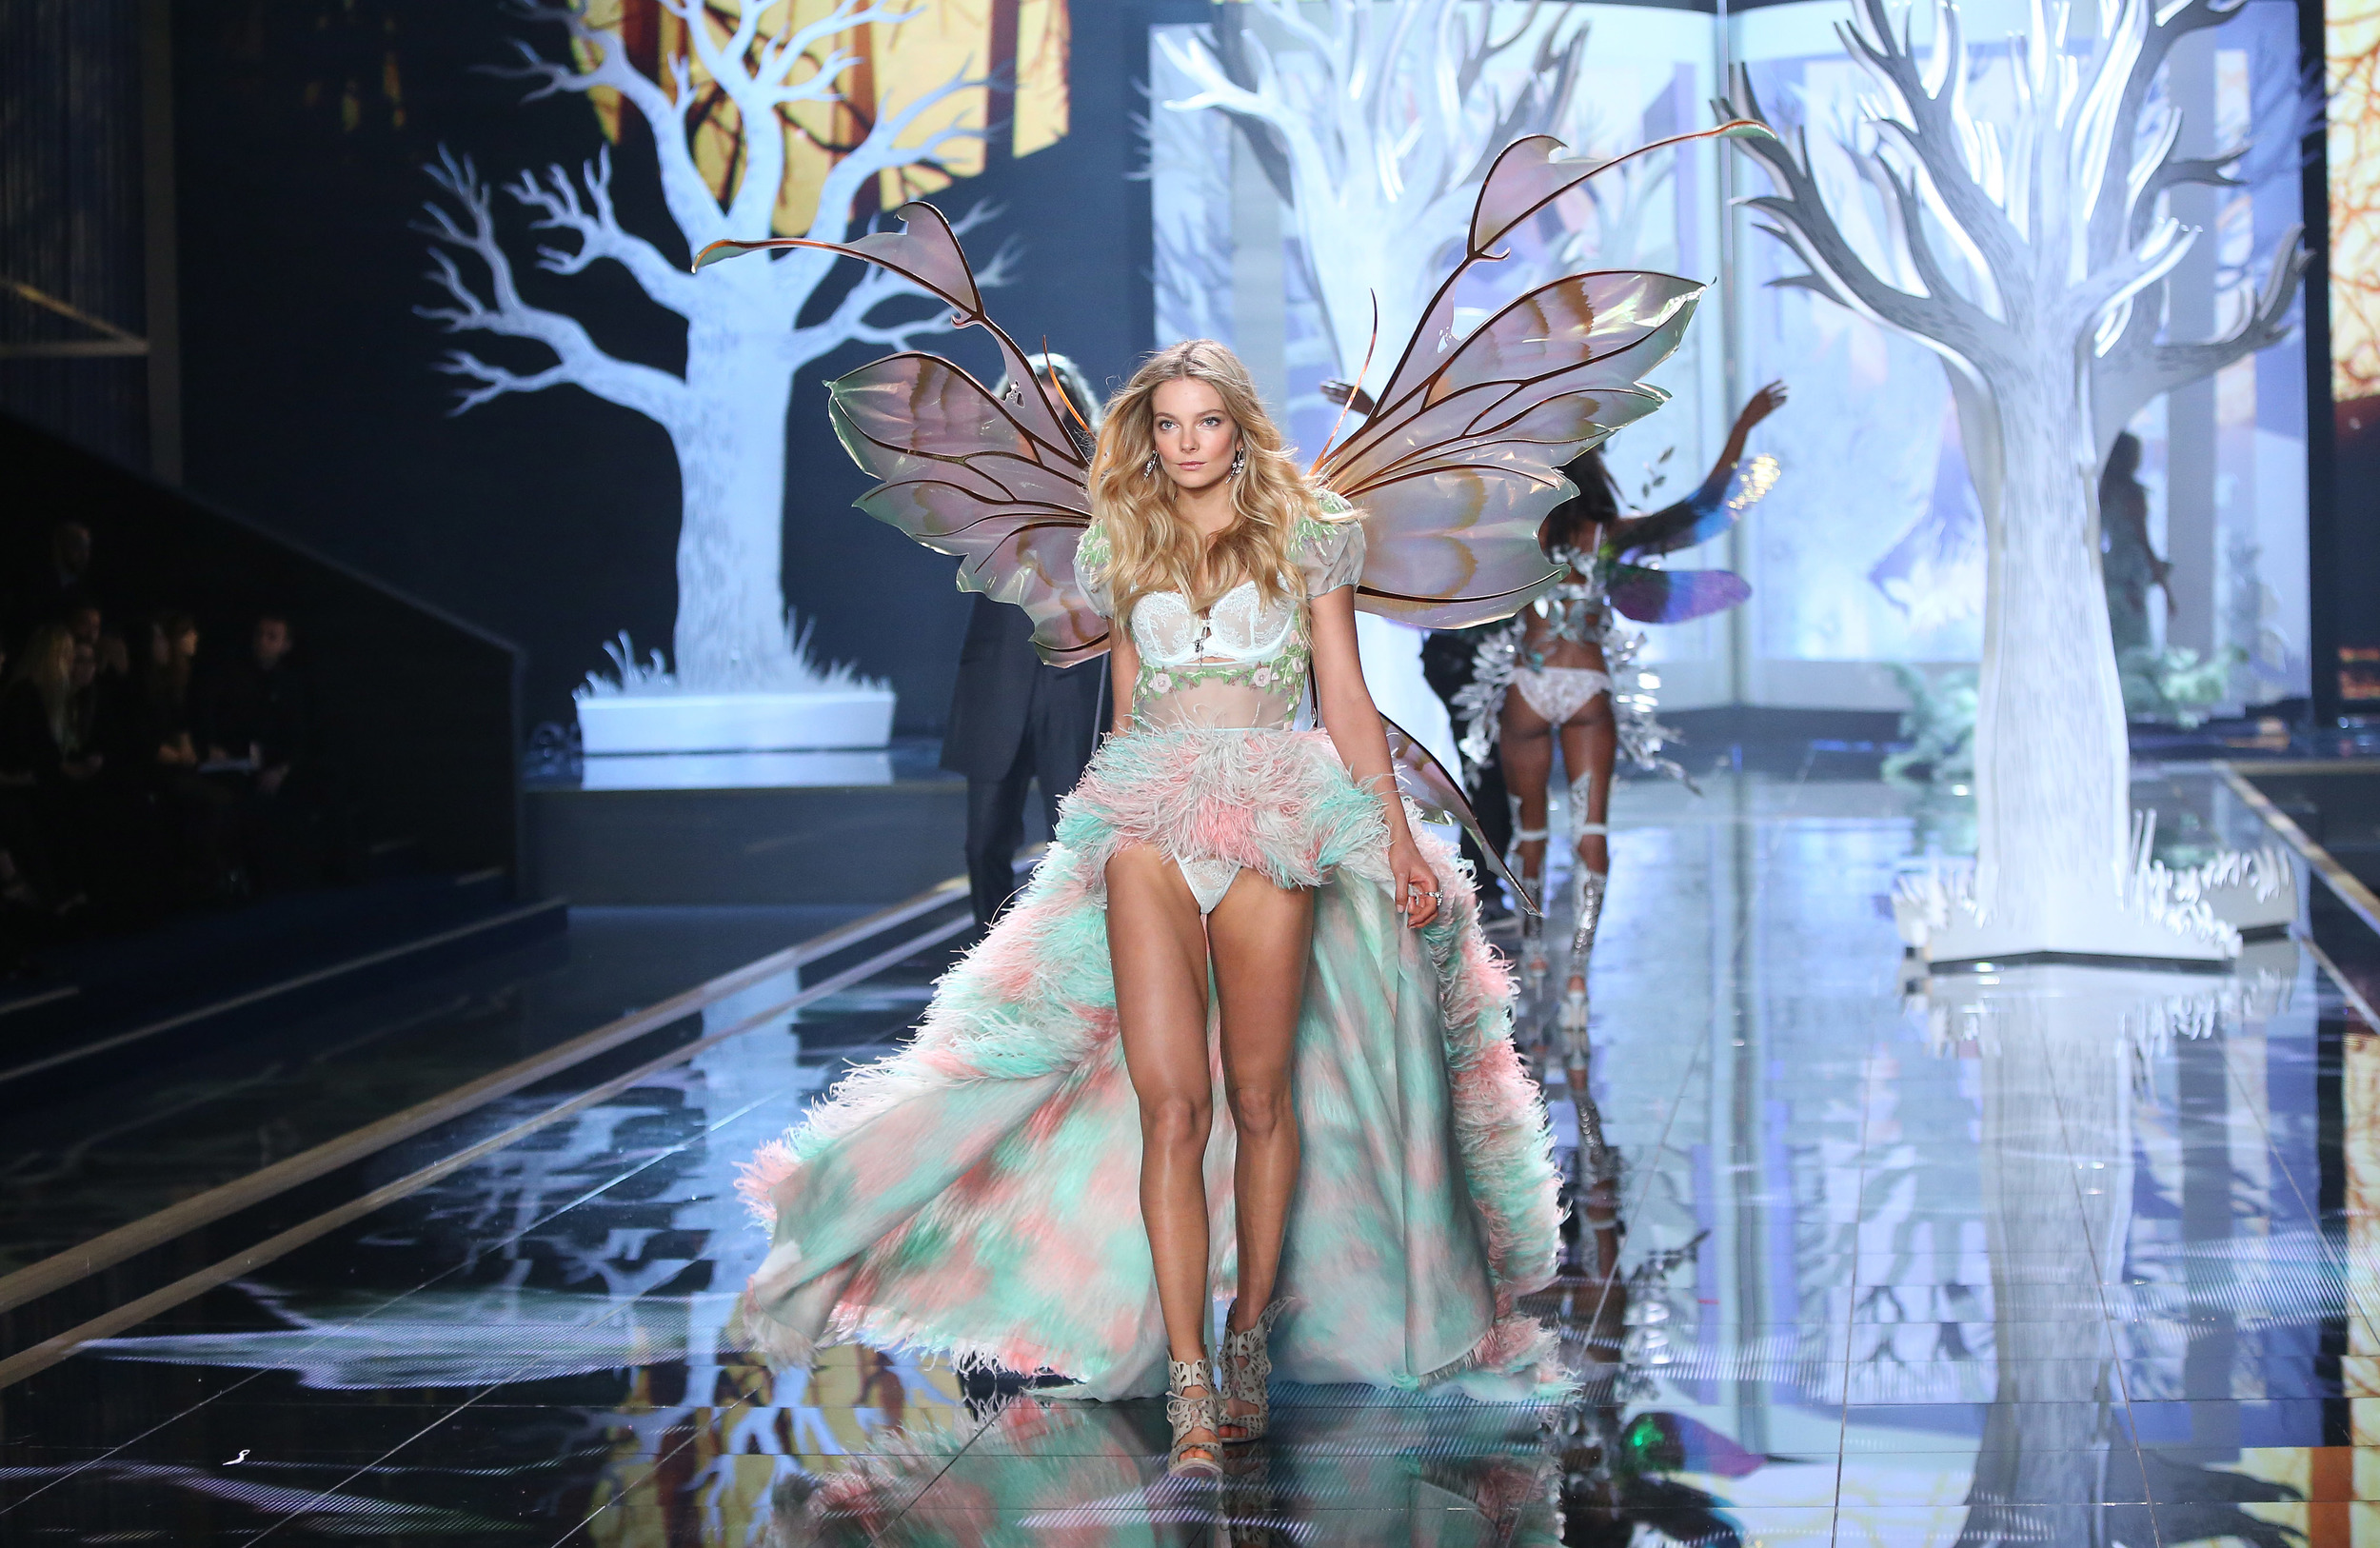 2014 Victoria's Secret Fashion Show Hozier Eniko Mihalik During Hozier